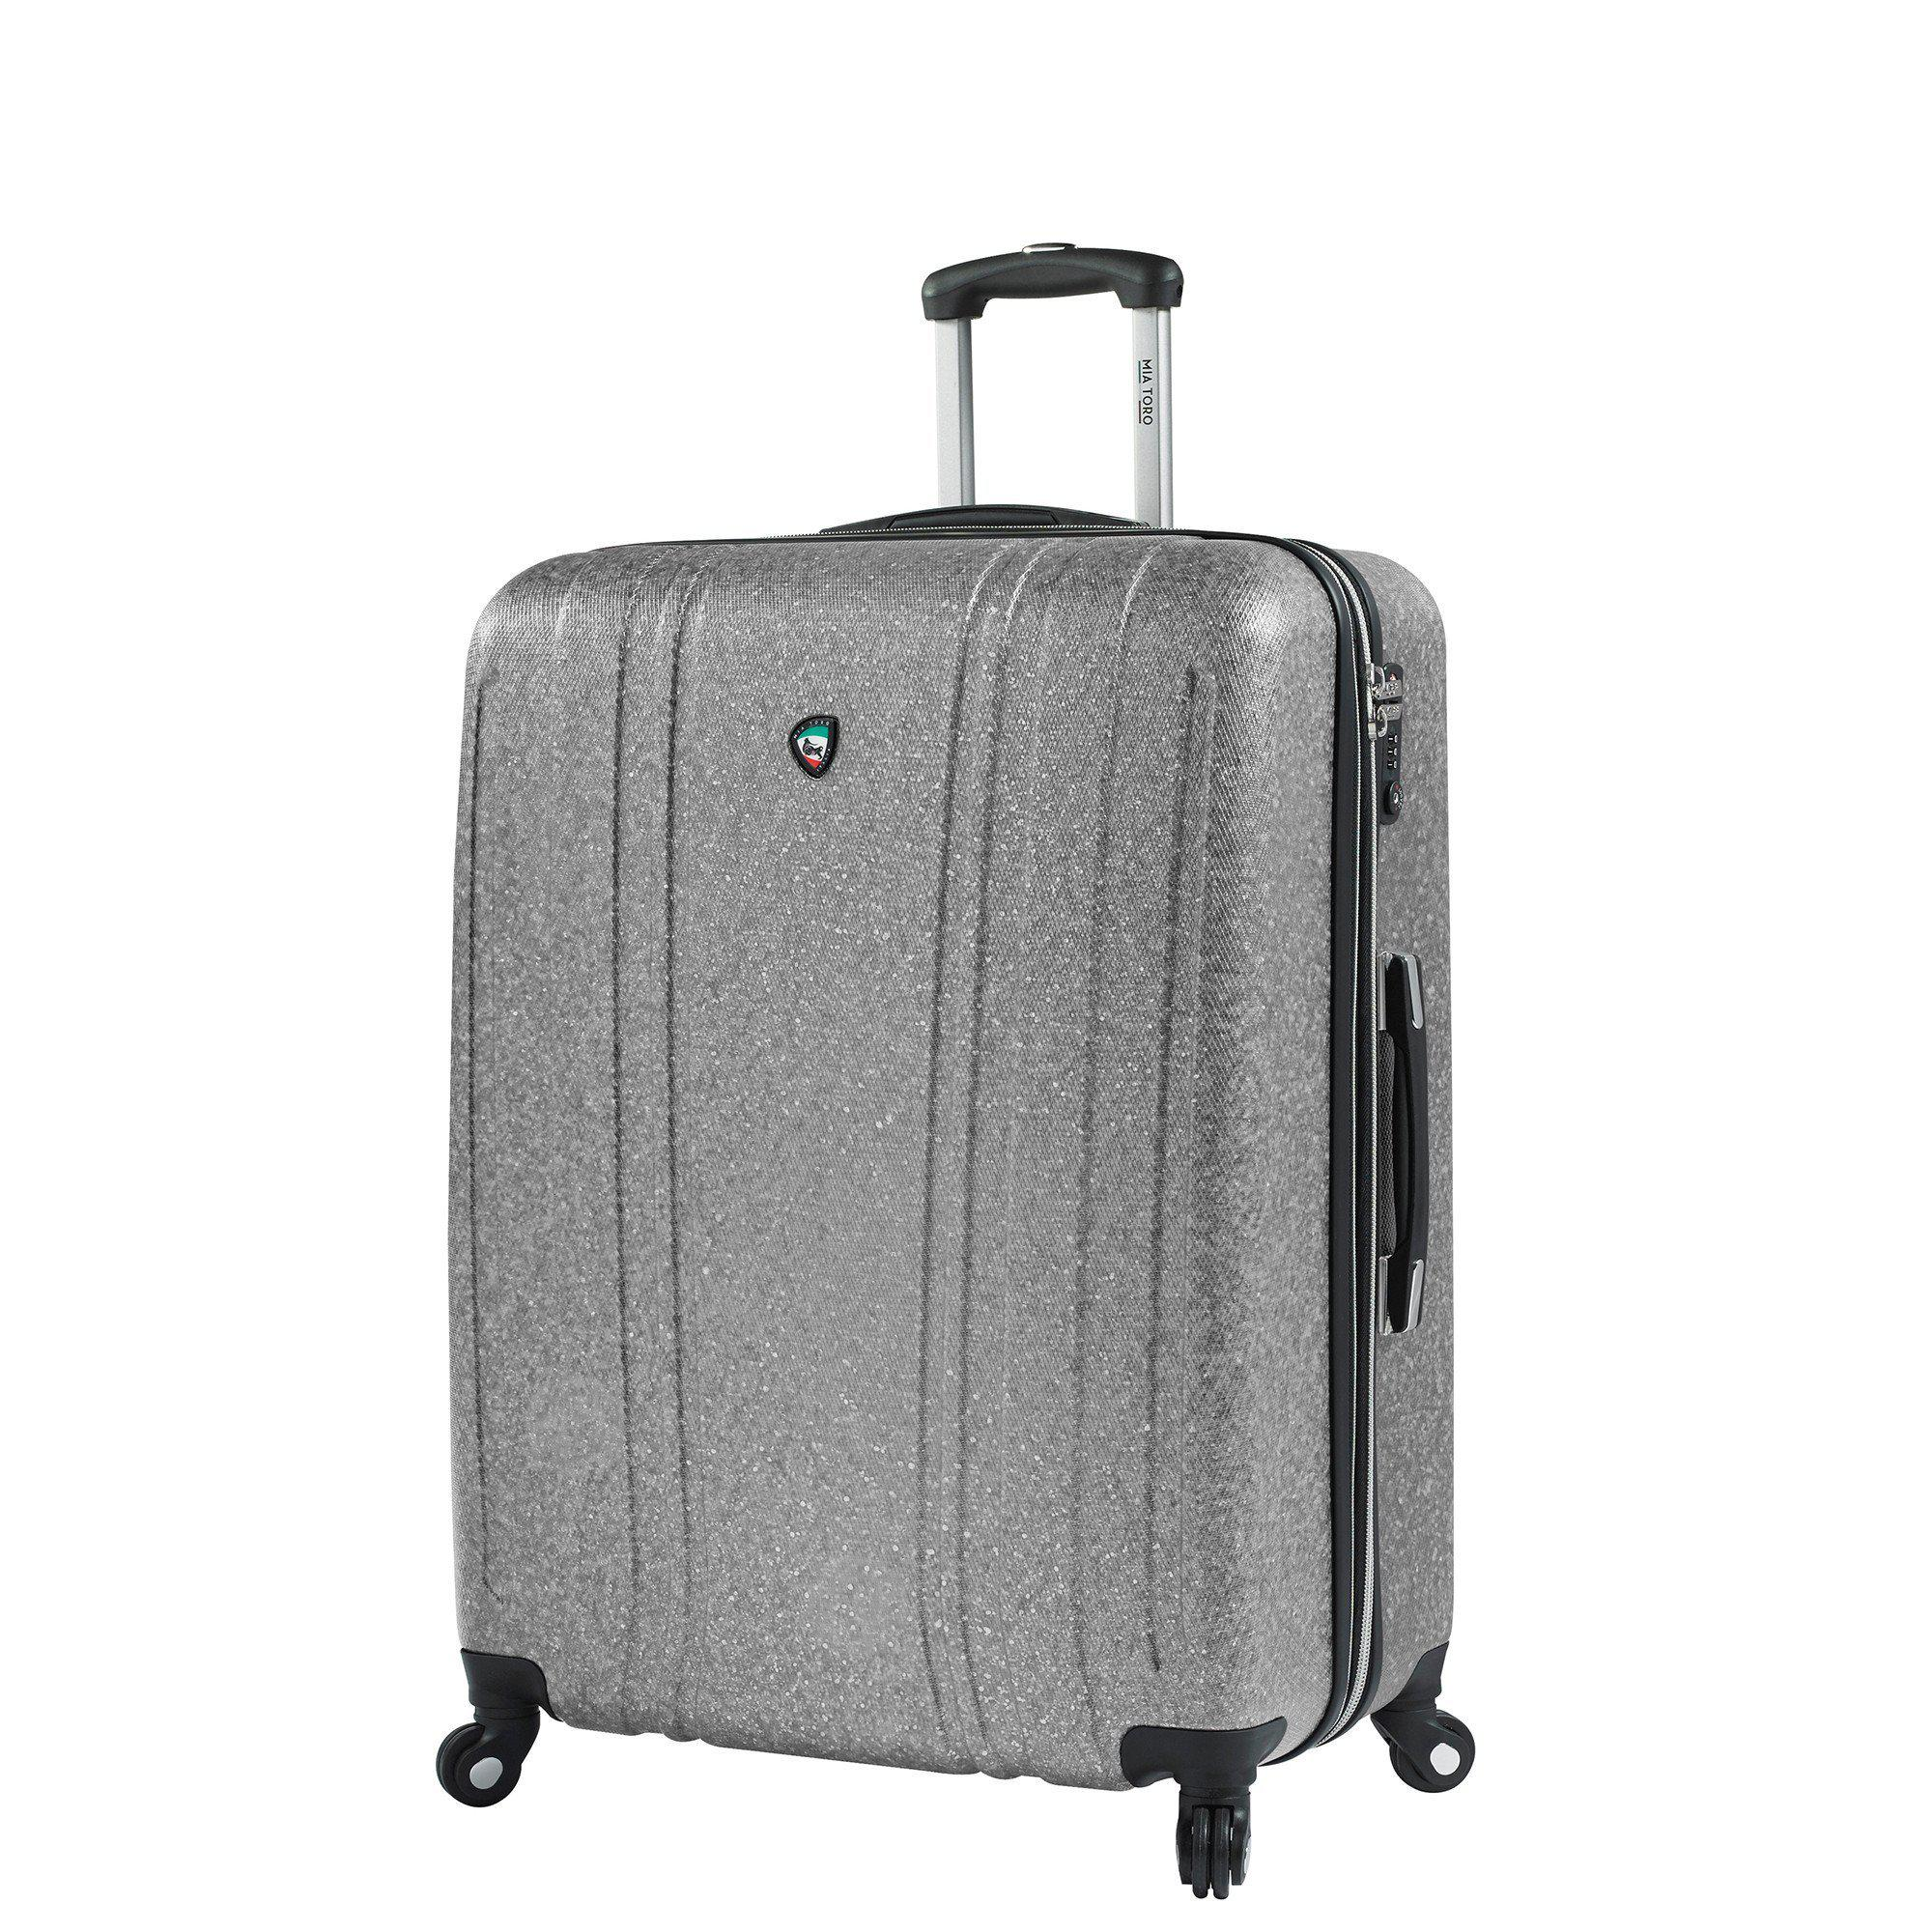 "Annata Acid Washed Texture Hardside 24"" Spinner Luggage"